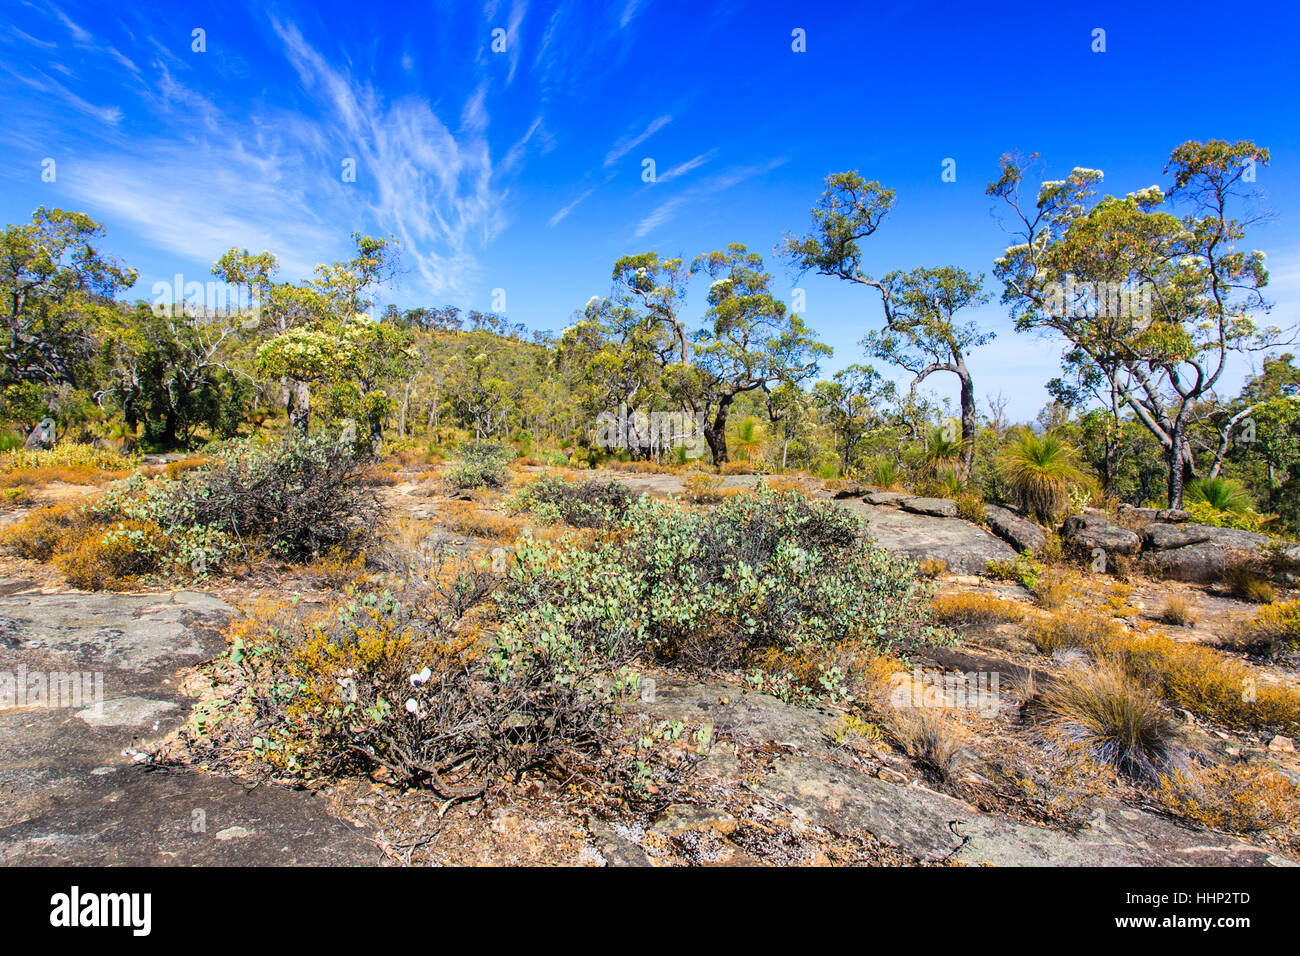 Flowering Eucalyptus trees growing in bushland on granite outcrops at Mount Dale. Darling Scarp, Perth, Western - Stock Image